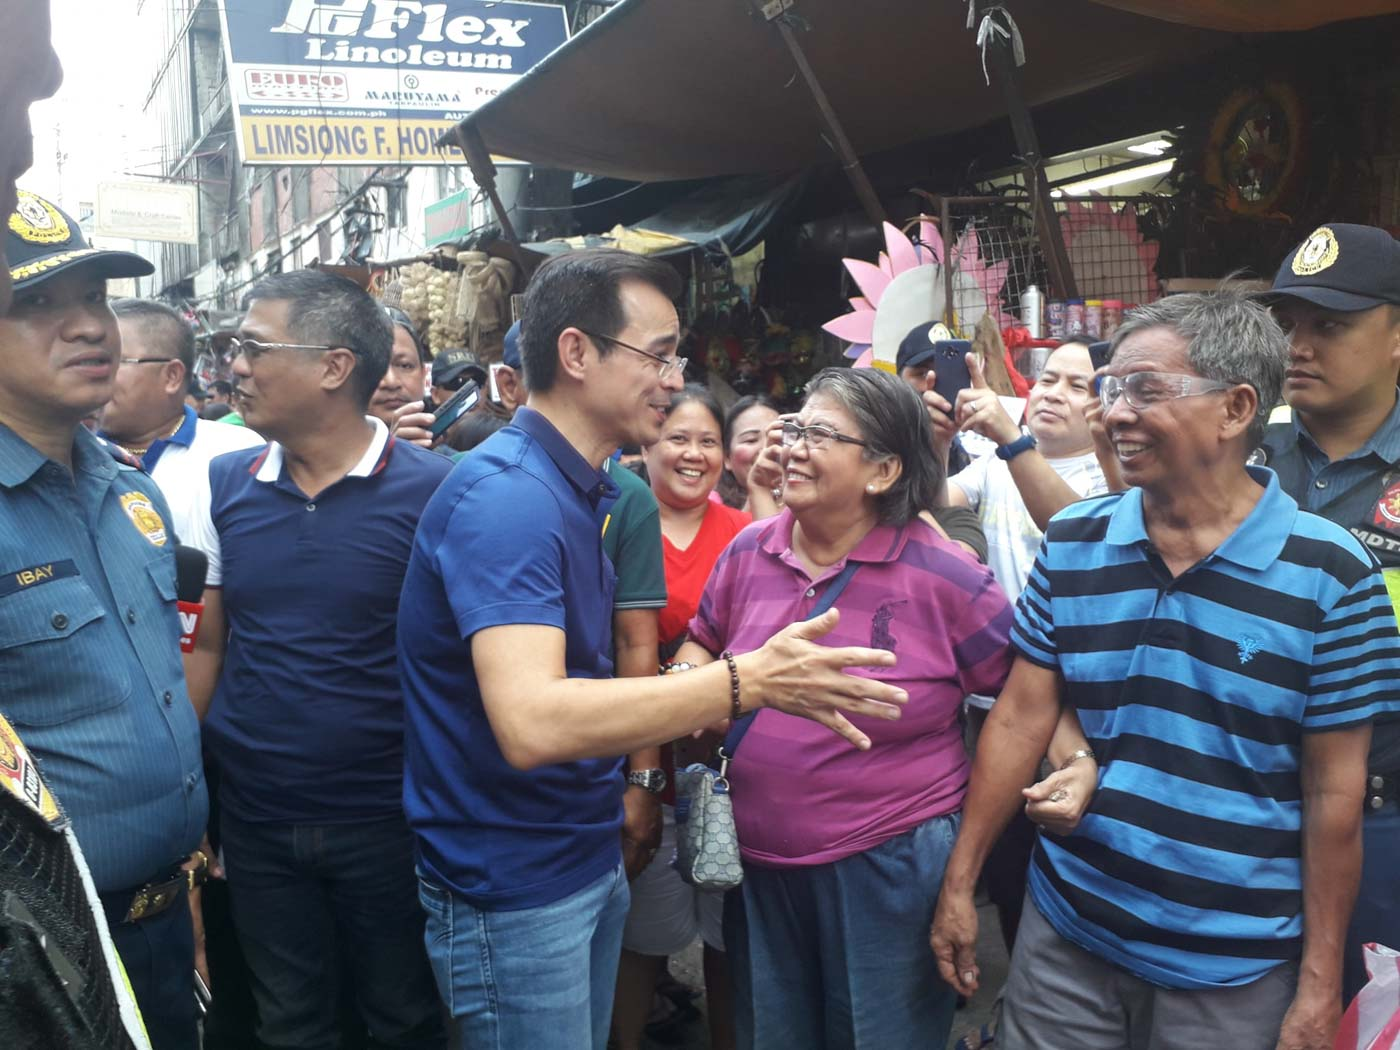 CLEARING OPERATIONS. Manila Mayor Isko Moreno earns huge praise for clearing operations carried out in his first week in office. Photo from Isko Moreno Domagoso's FB page